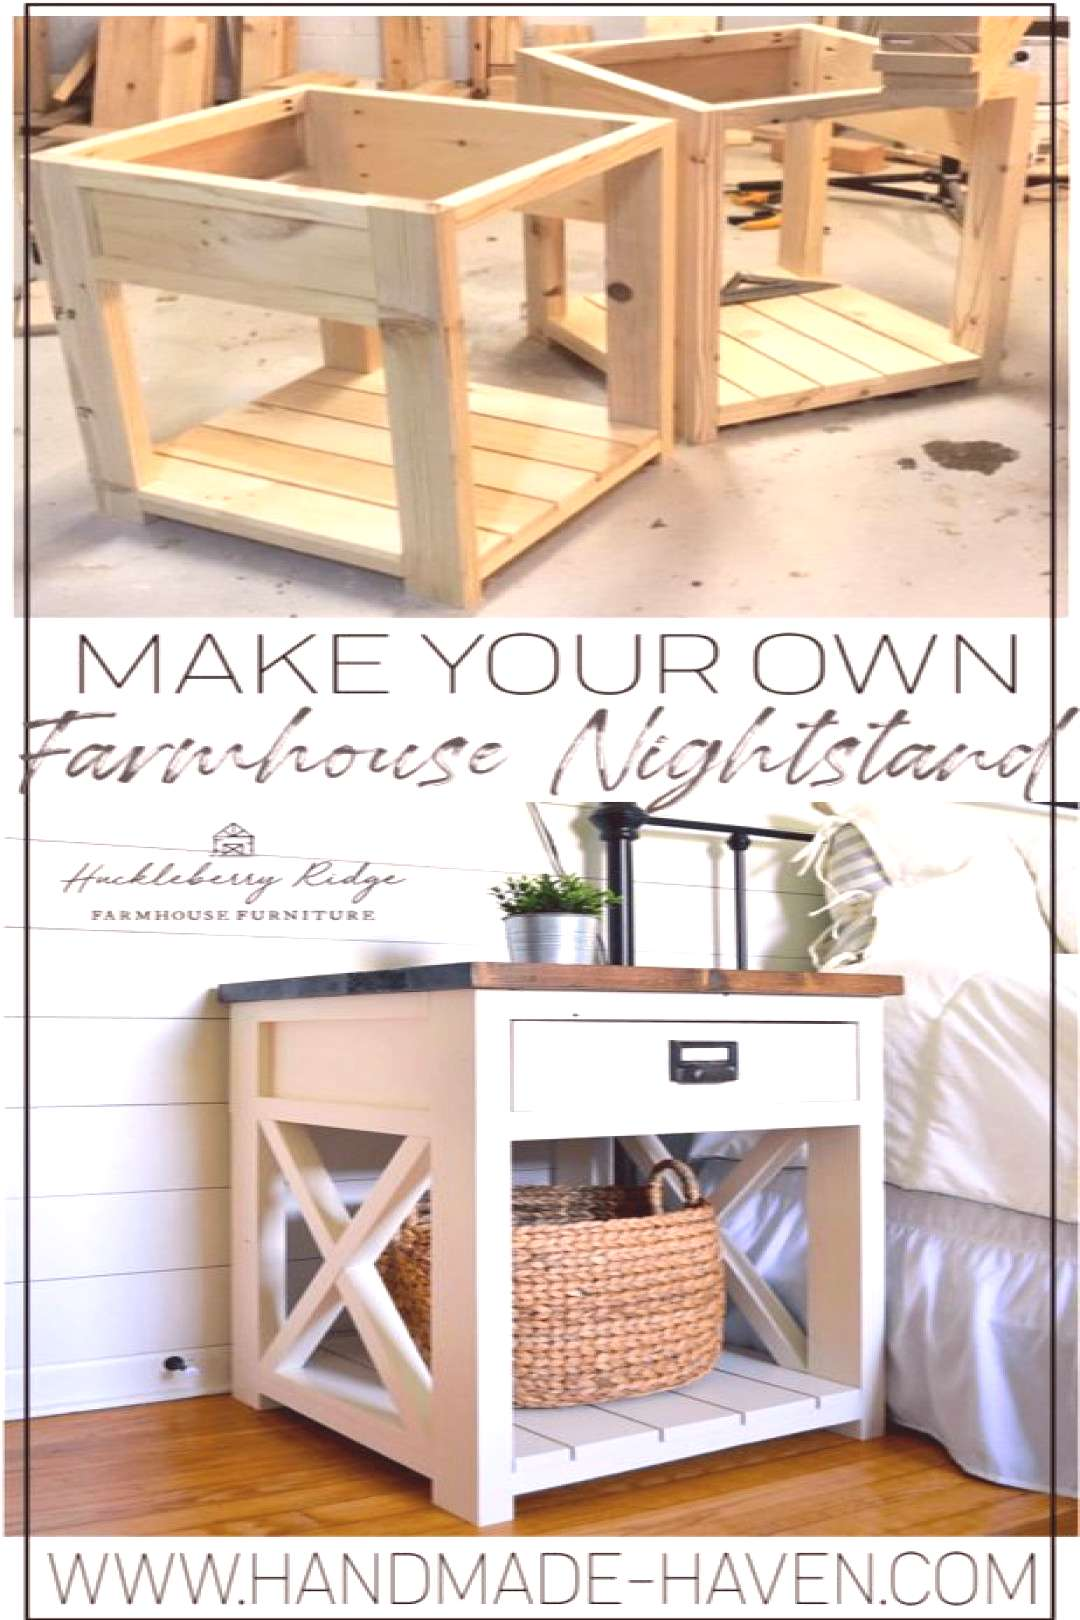 How to make a farmhouse night stand or side table for your home living room or bedroom.